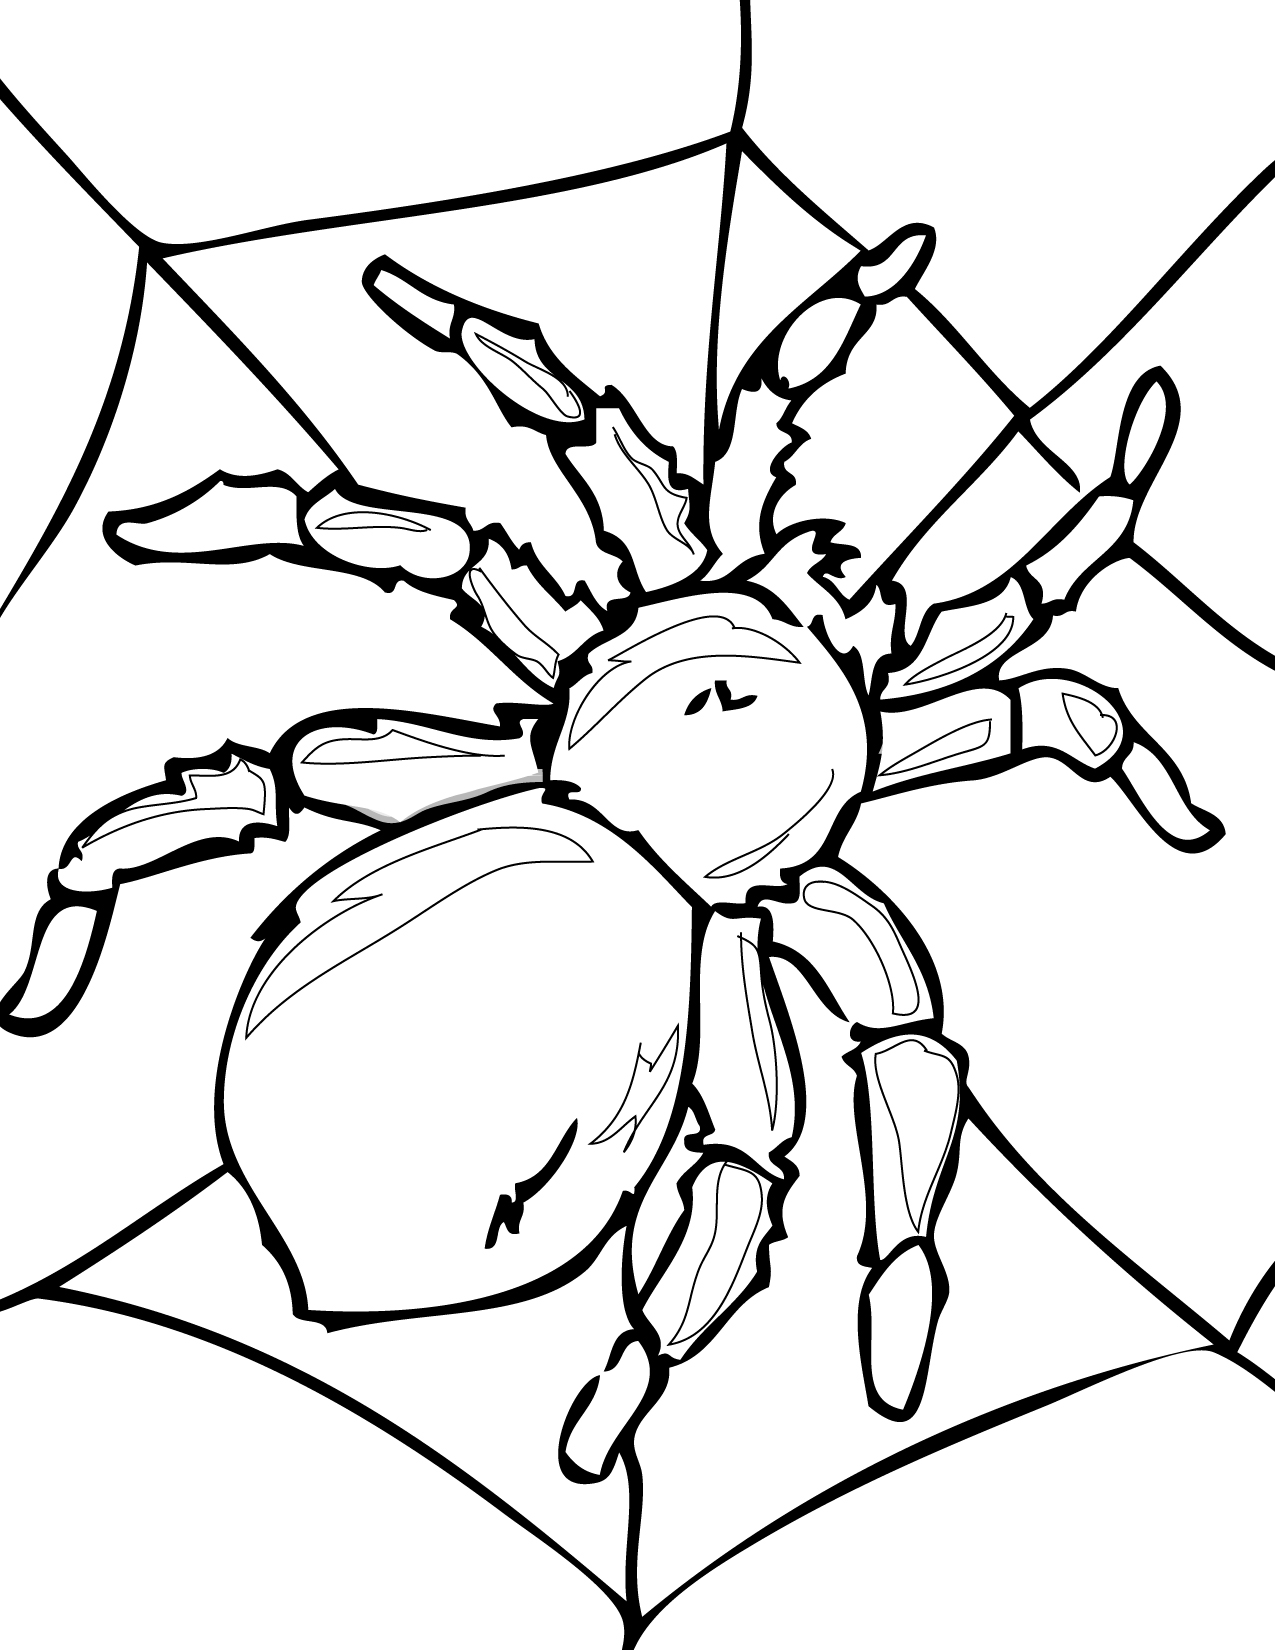 Spider Coloring Page - Handipoints